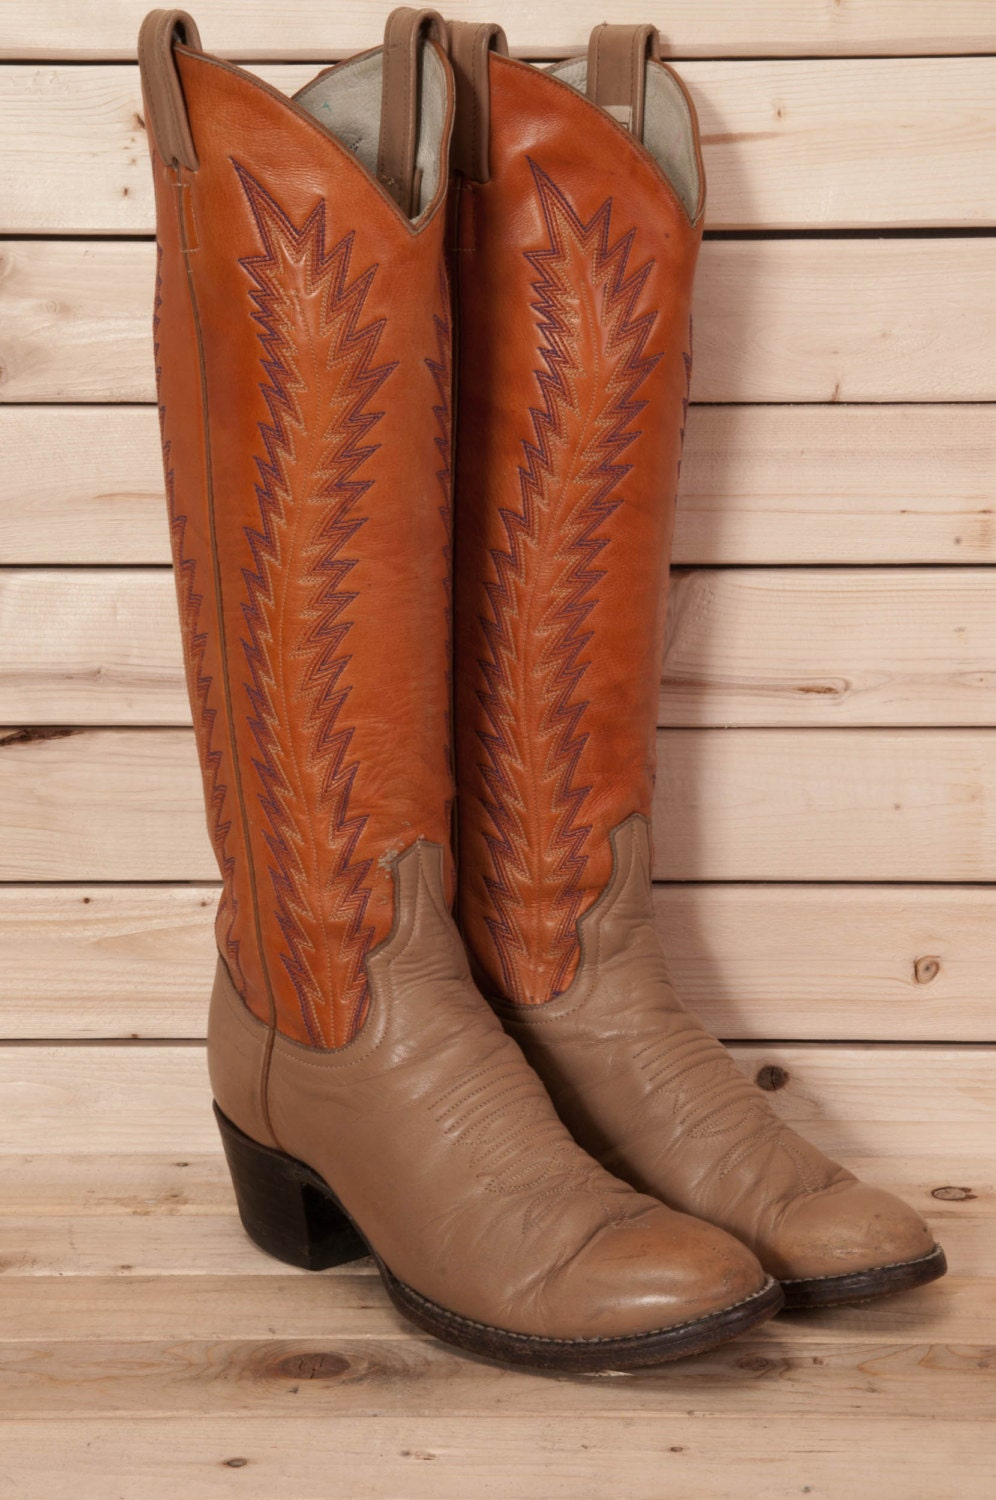 cowboy boots womens size 6 larry by metropolisnycvintage